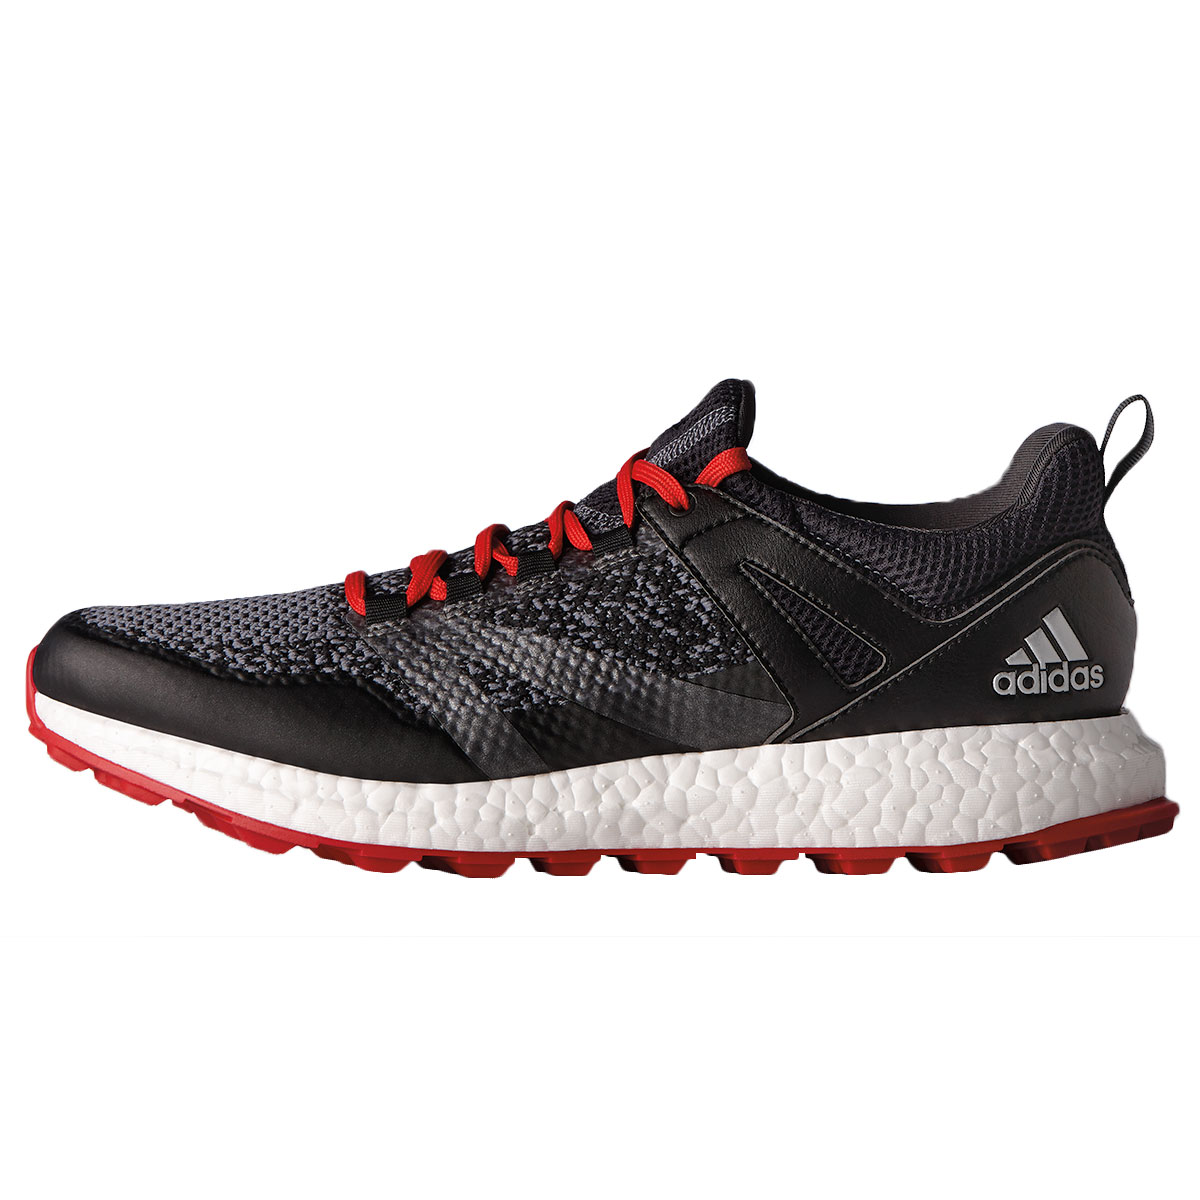 Adidas Golf 2017 Mens Crossknit Boost Golf Shoes